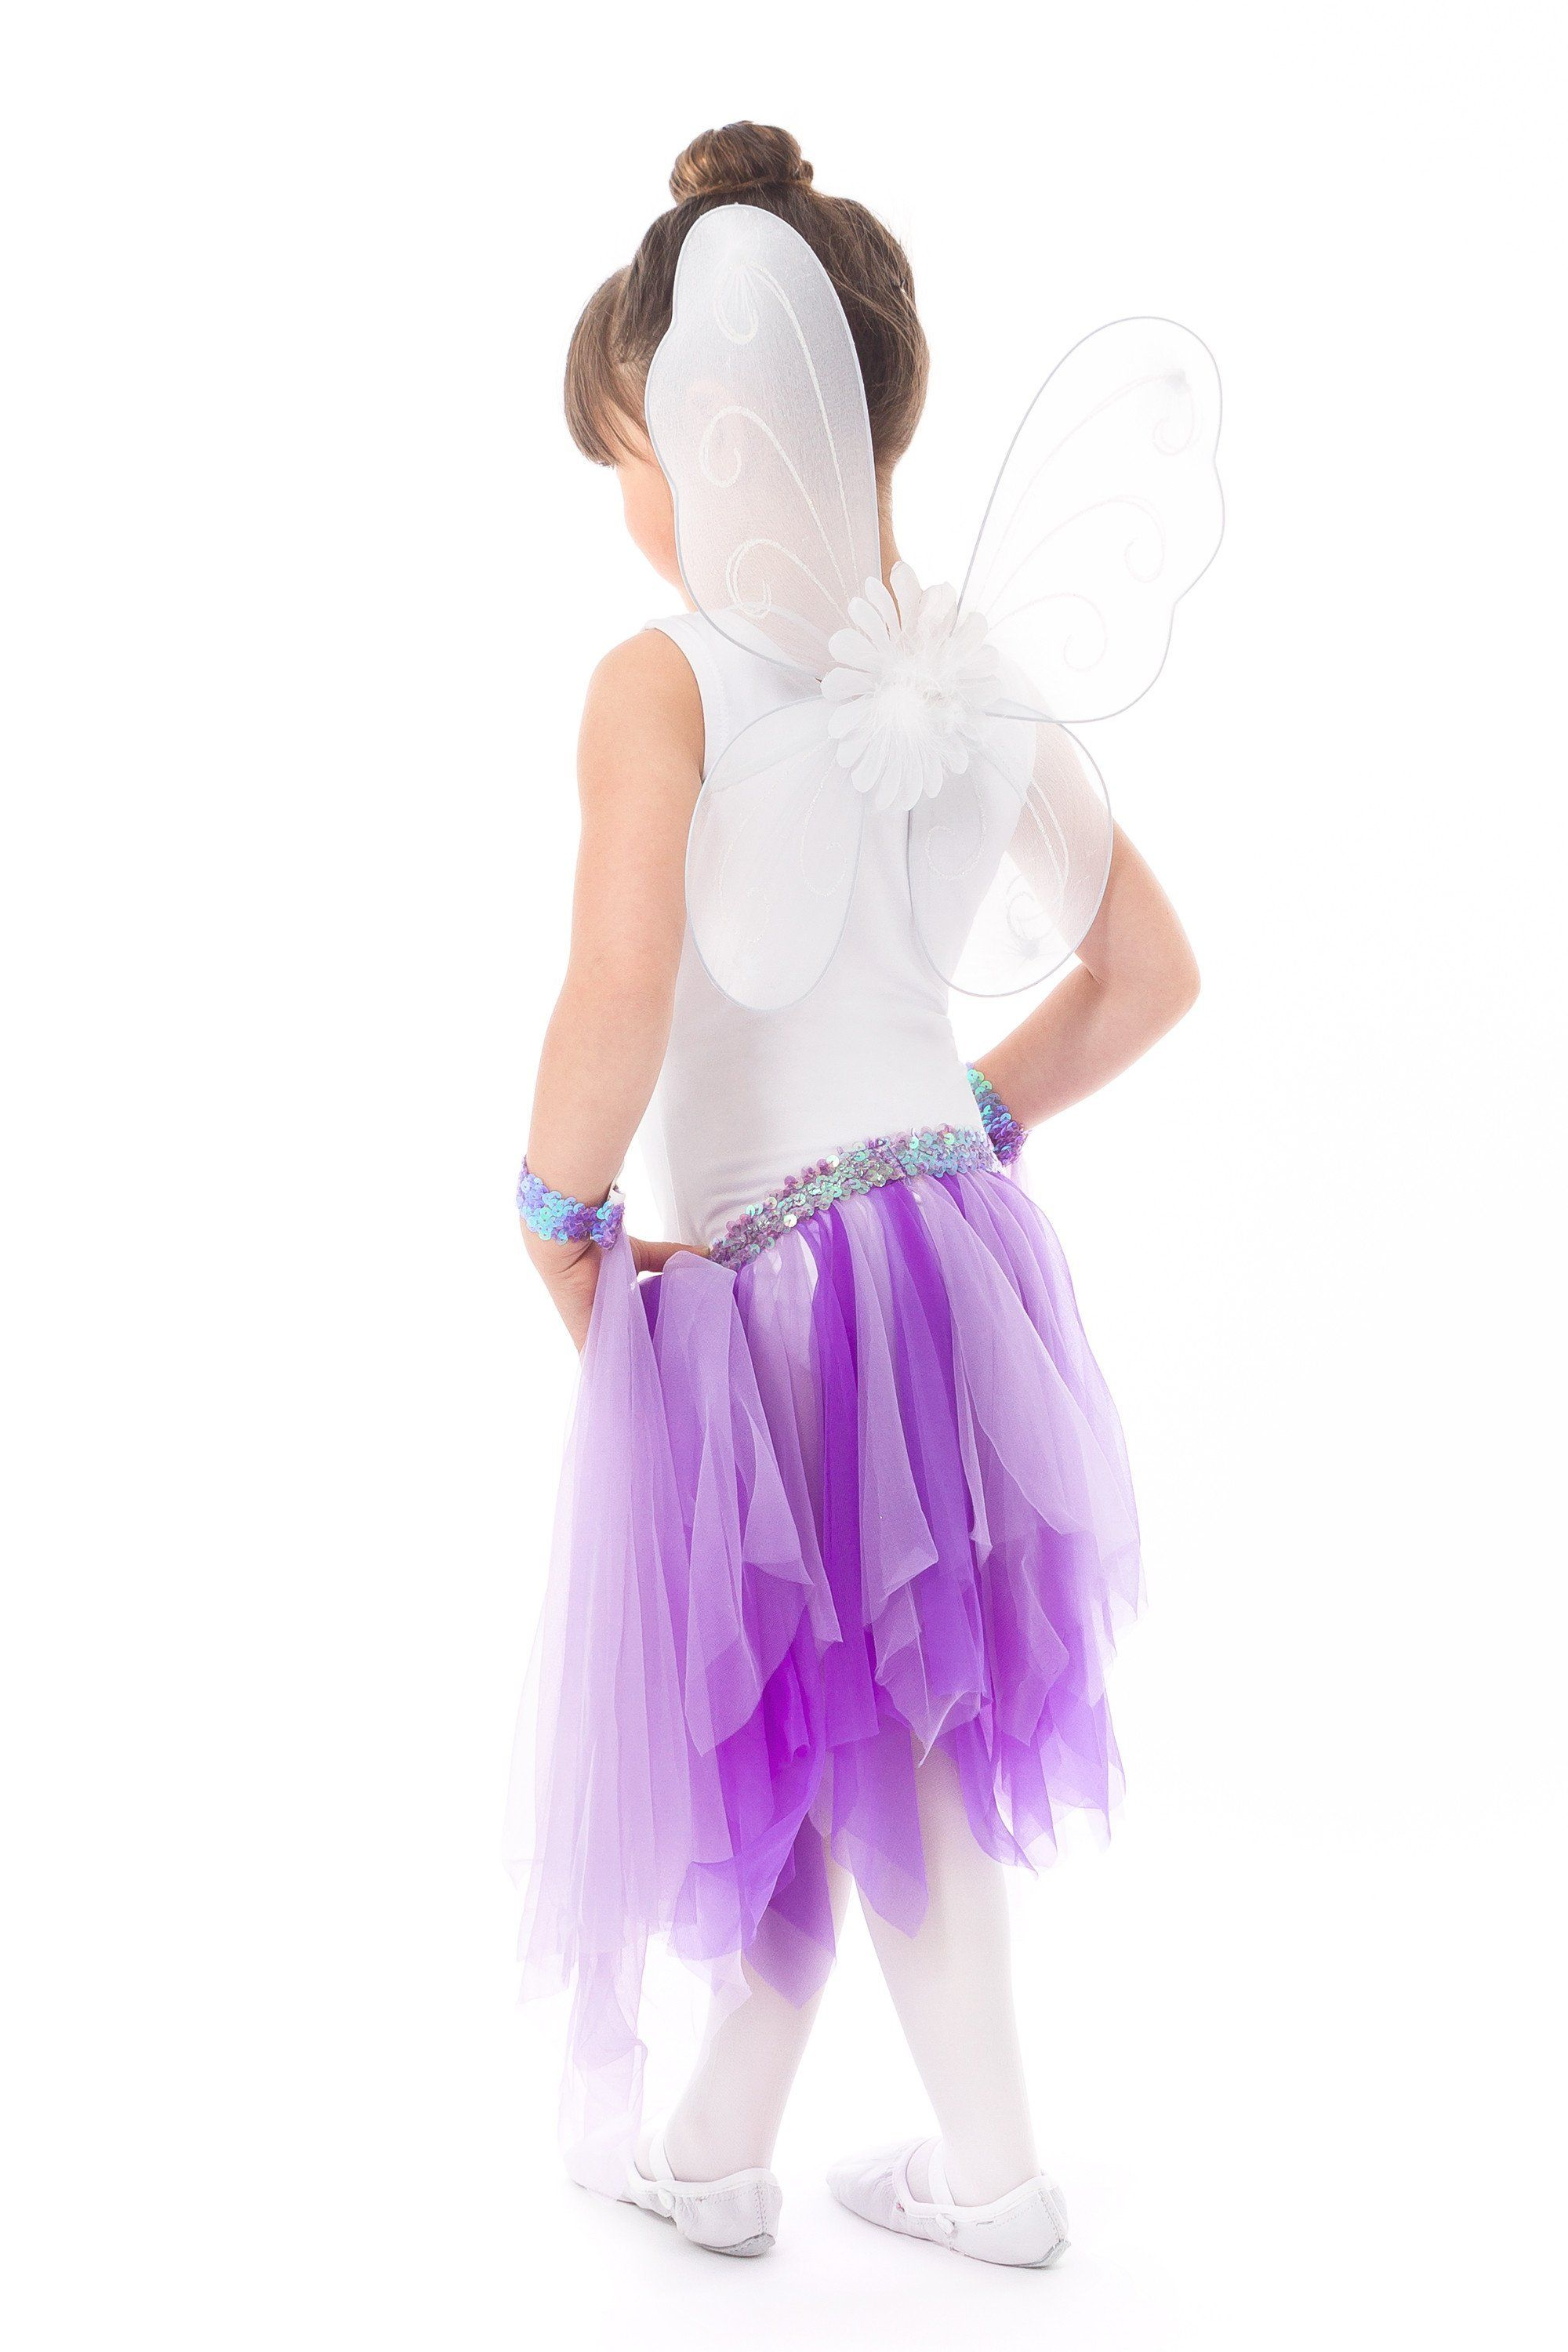 Accessories - Fairy Wings White  sc 1 st  Little Adventures & Fairy Wings White u2013 Little Adventures LLC